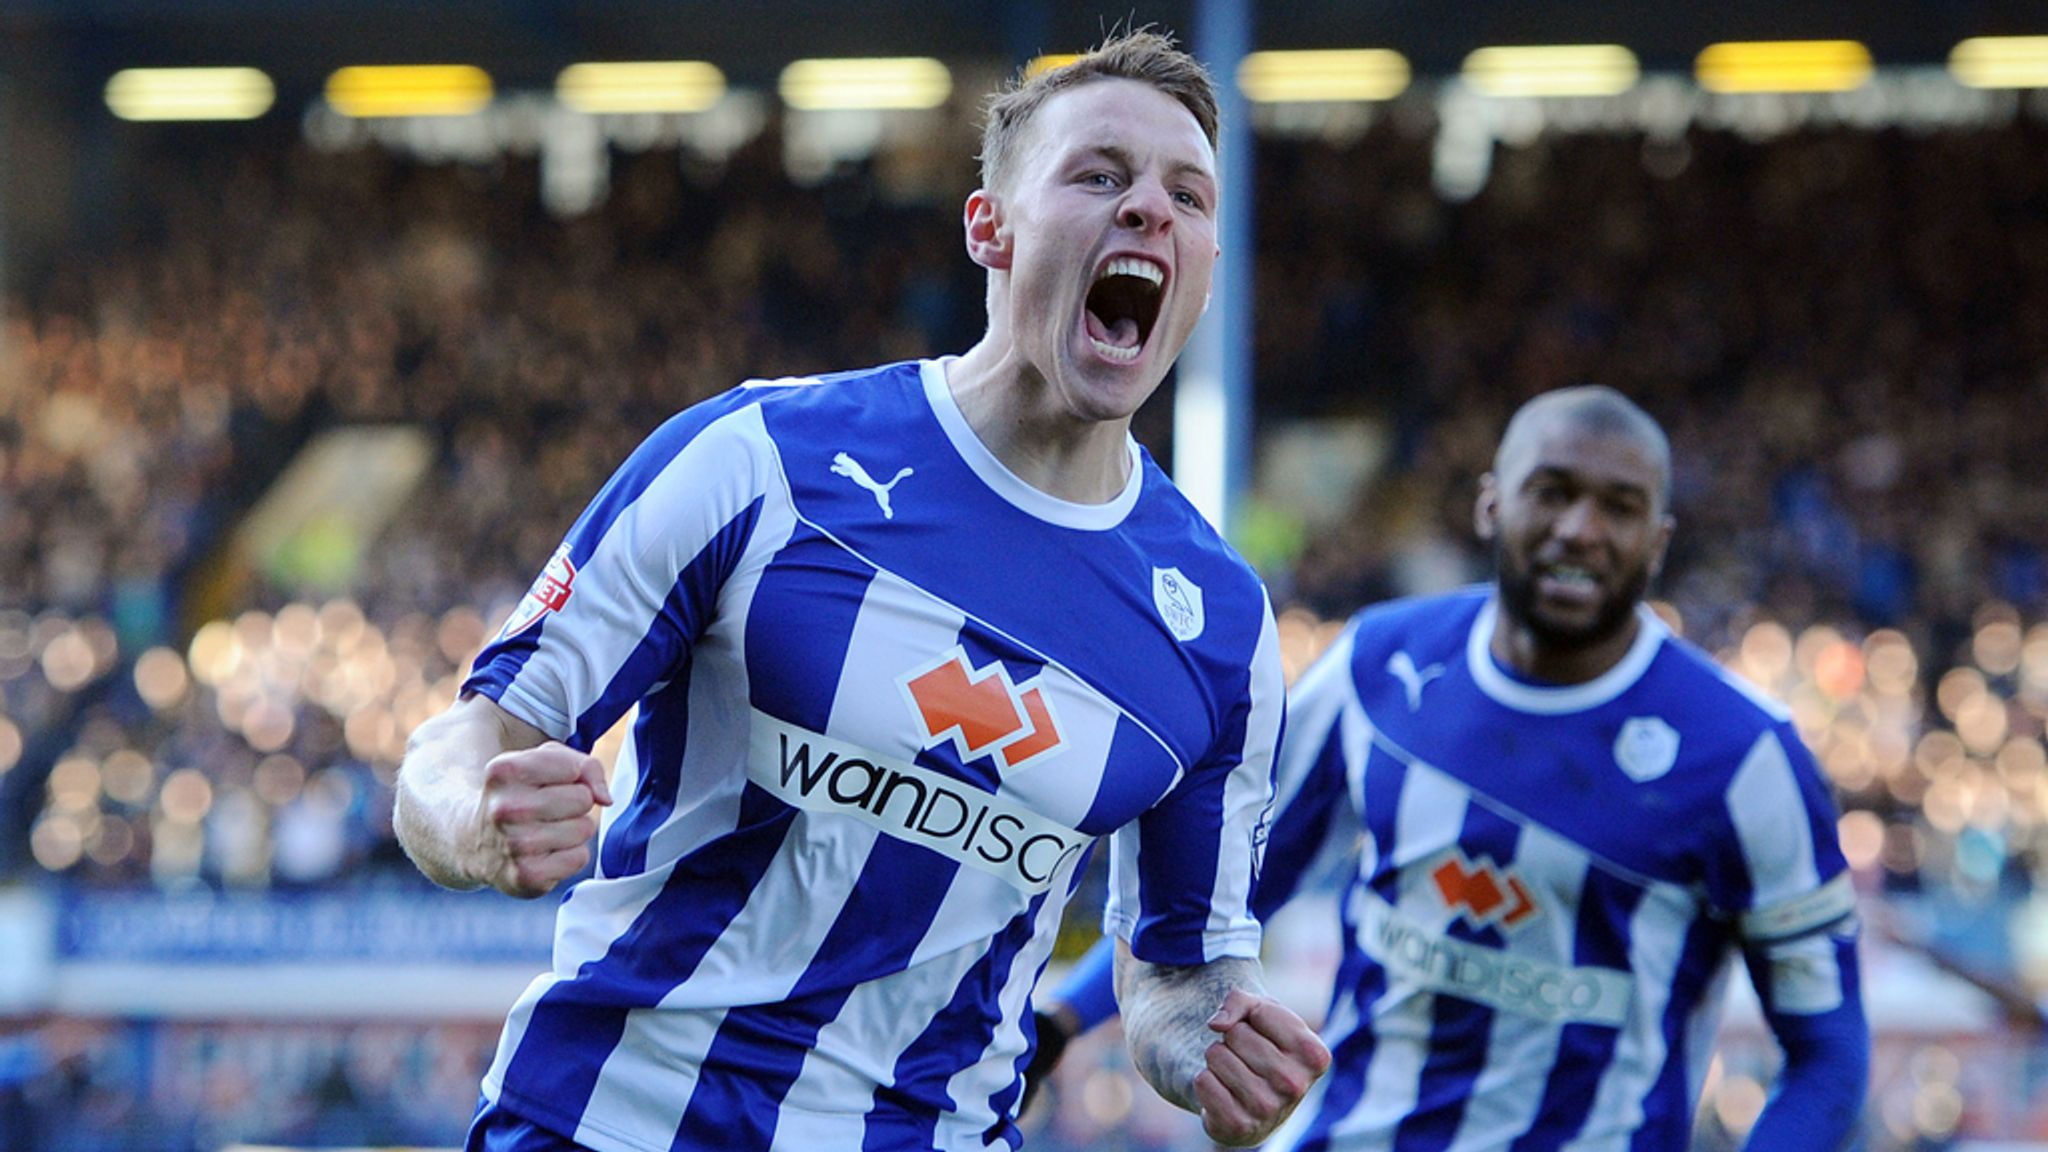 Image result for connor wickham sheffield wednesday